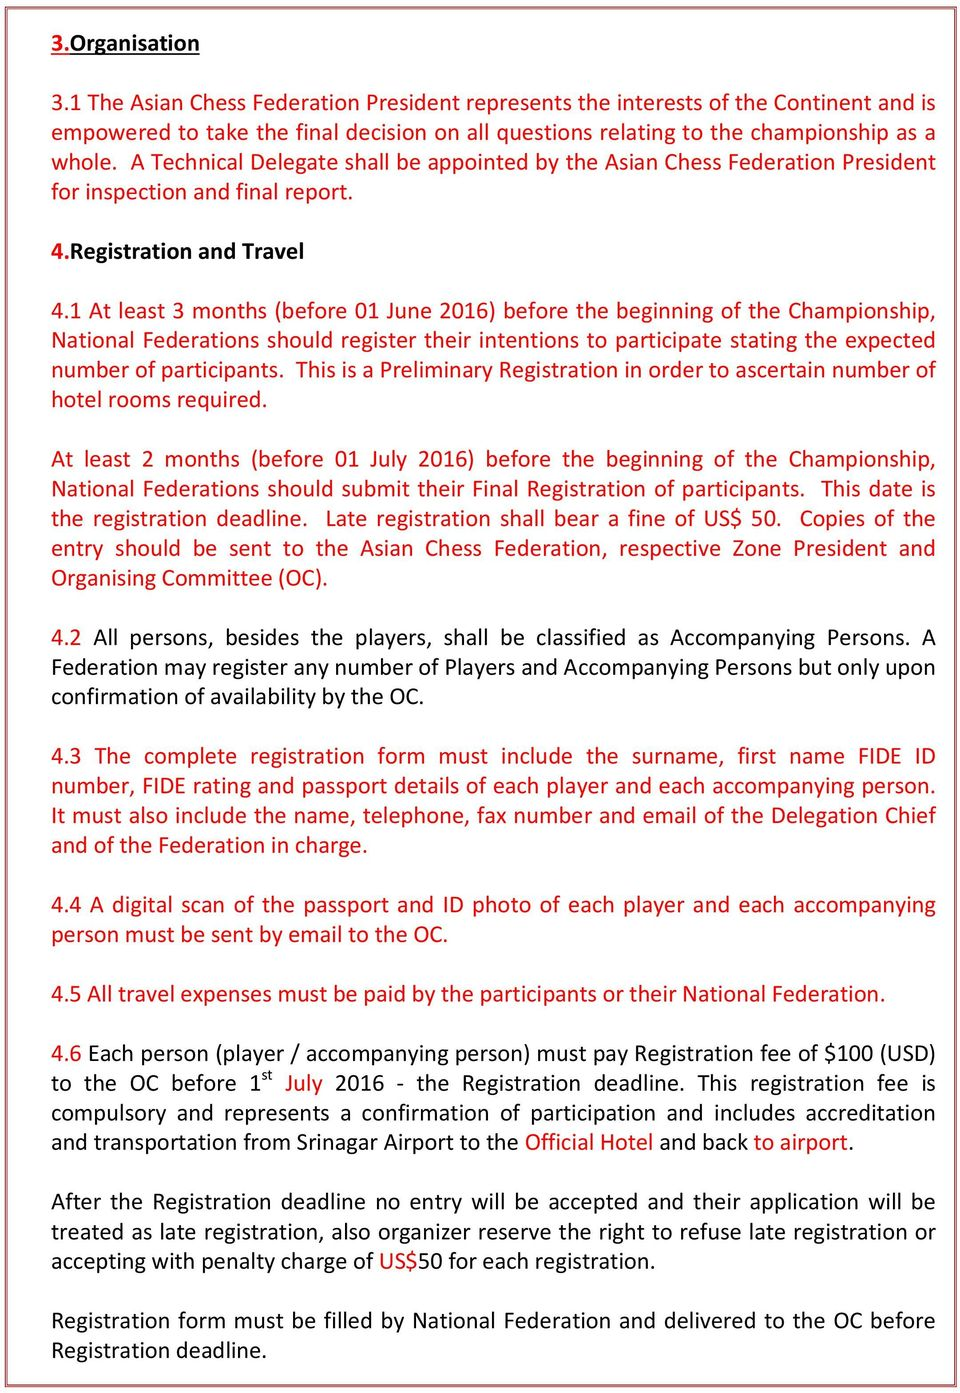 1 At least 3 months (before 01 June 2016) before the beginning of the Championship, National Federations should register their intentions to participate stating the expected number of participants.